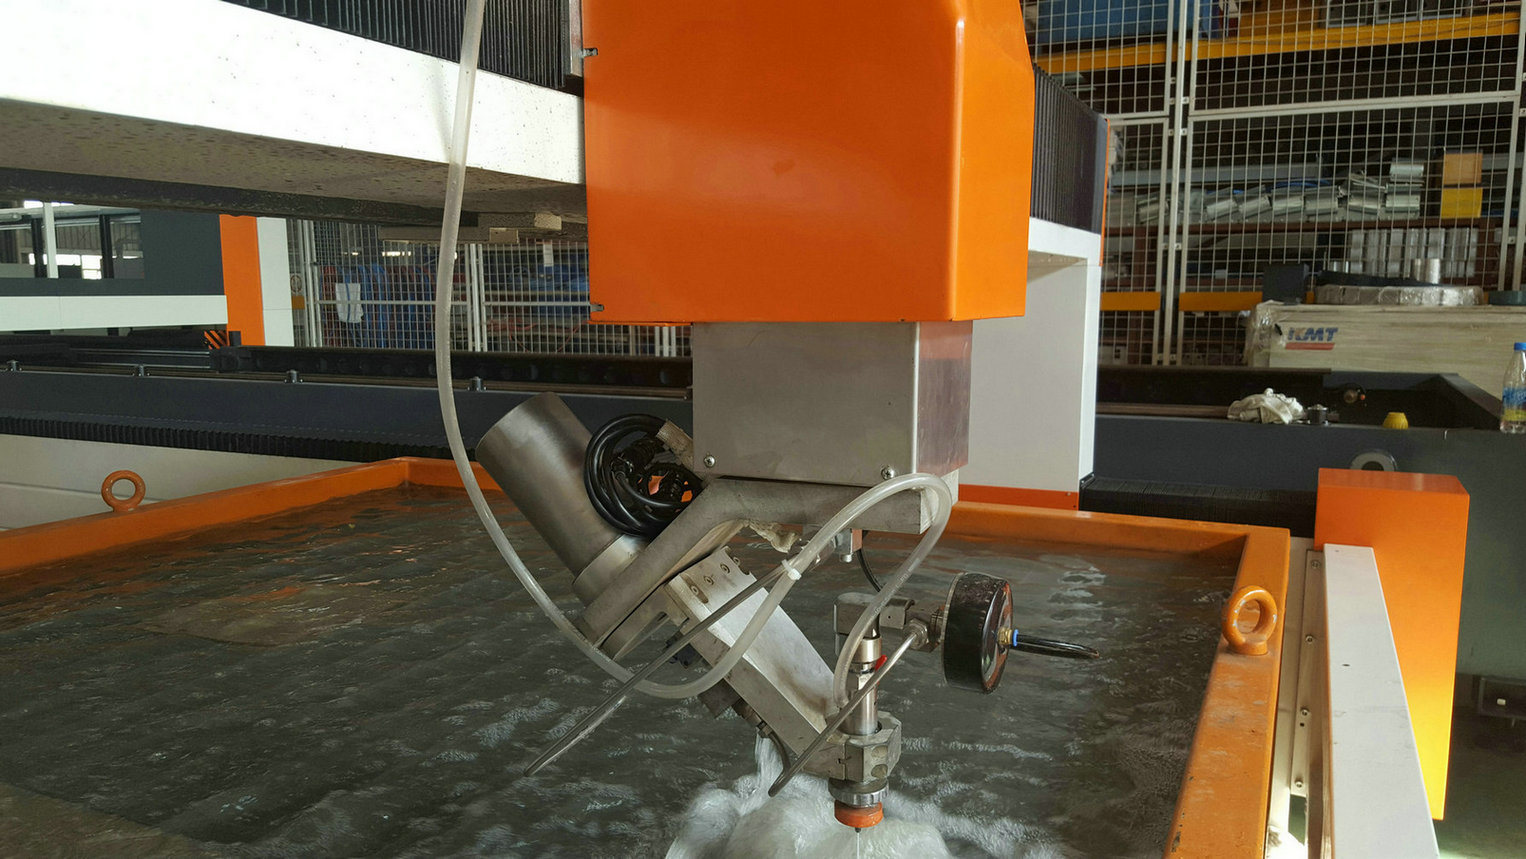 5 Axis CNC Water Jet Bevel Cutting Machine